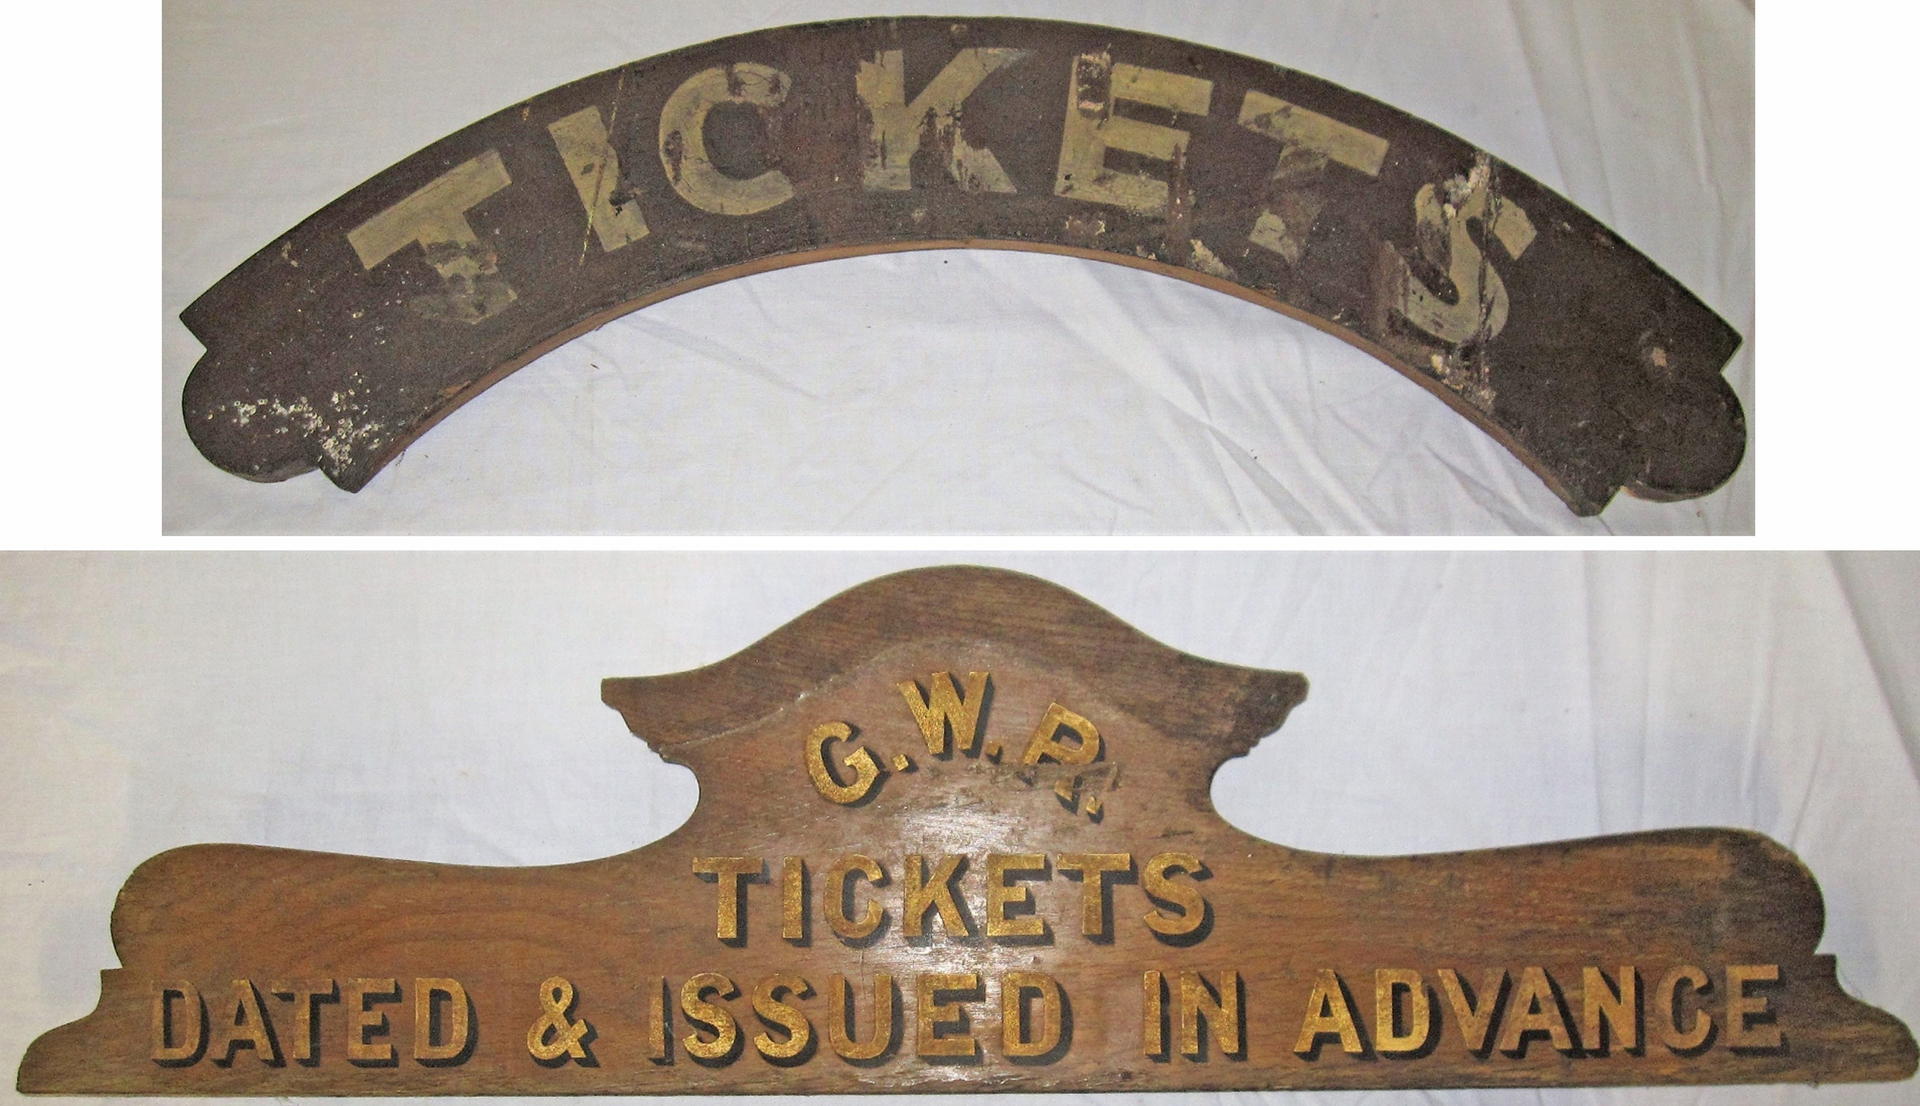 2 x wooden ticket office signs. TICKETS and GWR TICKETS DATED AND ISSUED IN ADVANCE written in